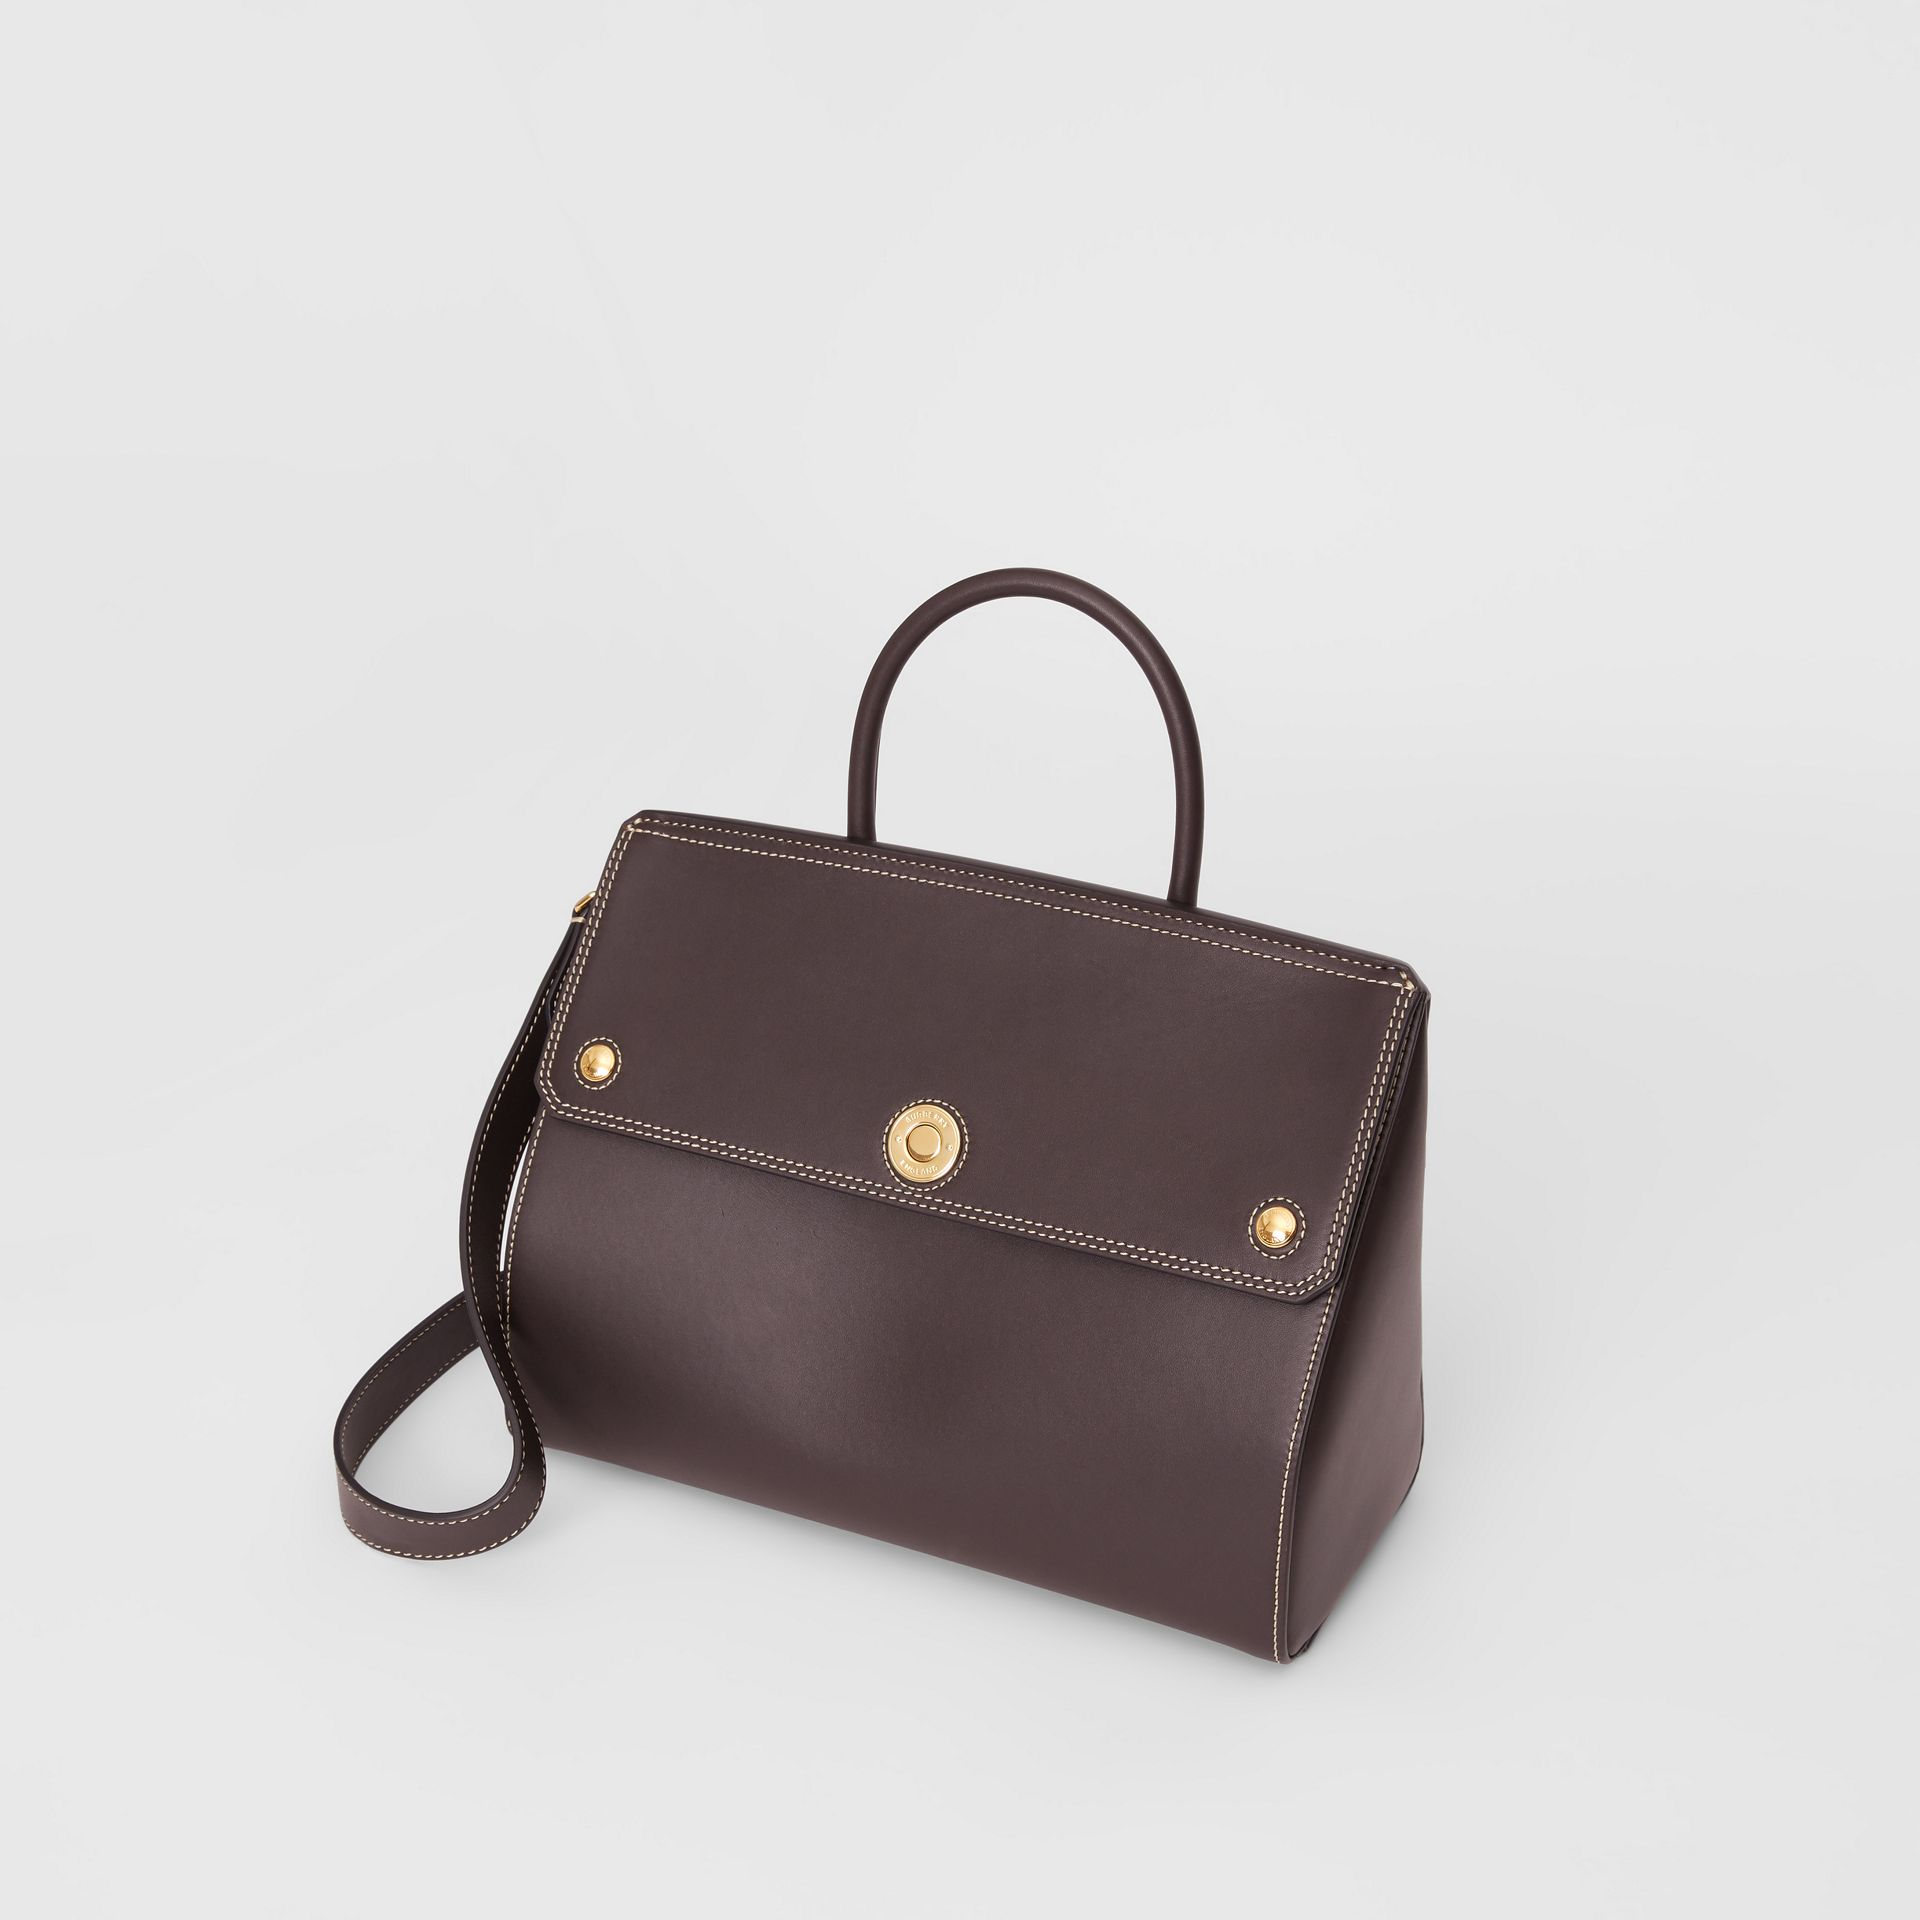 Small Leather Elizabeth Bag in Coffee - Women | Burberry - gallery image 2